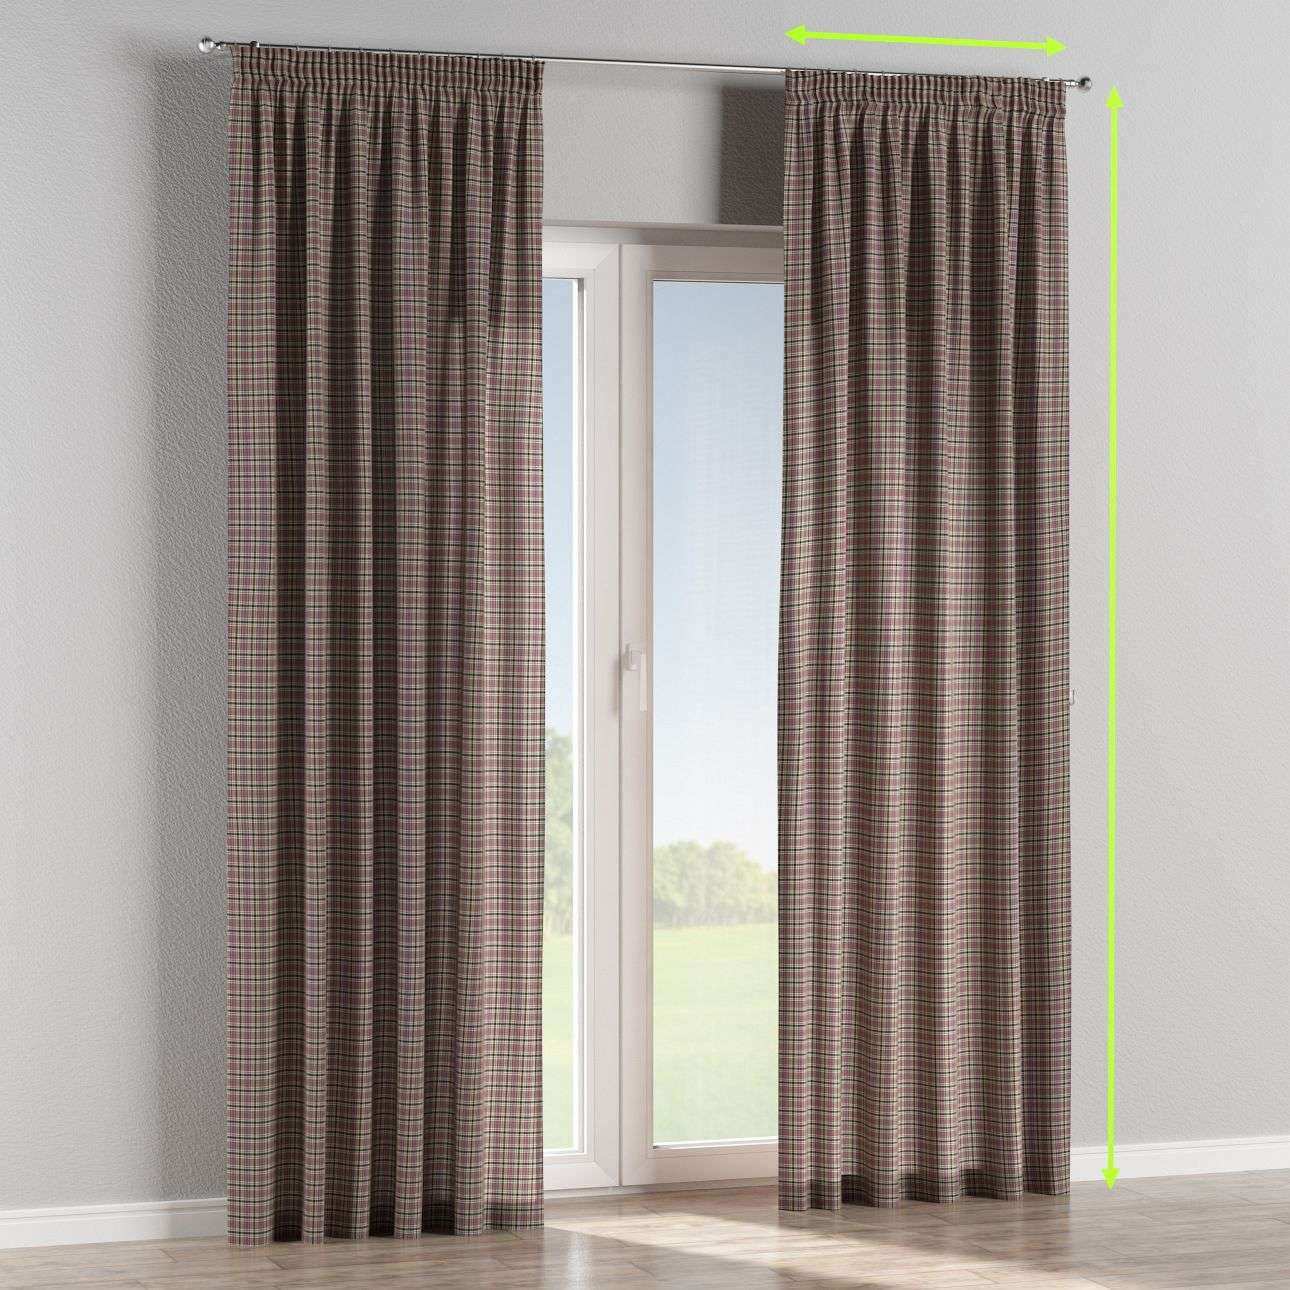 Pencil pleat lined curtains in collection Bristol, fabric: 126-32